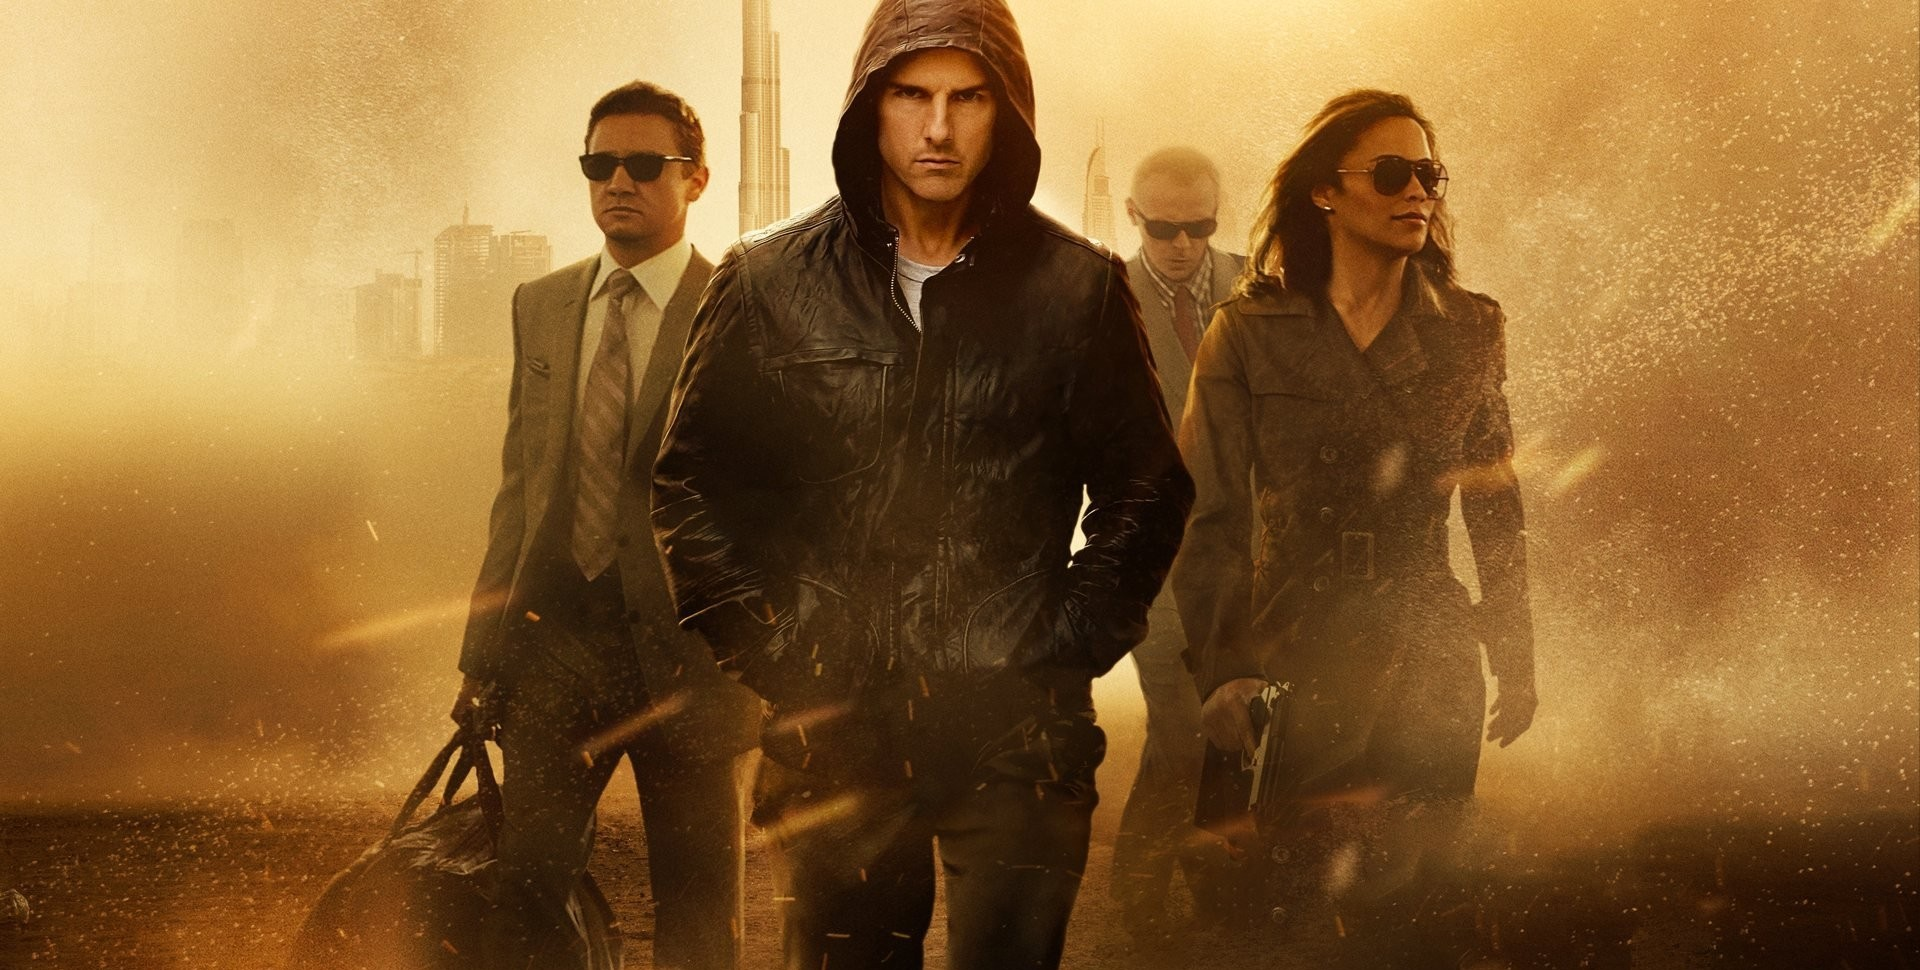 Mission: Impossible 4 – Phantom Protokoll (USA 2011) Kritik – Tom Cruise lädt zum Blockbuster des Jahres